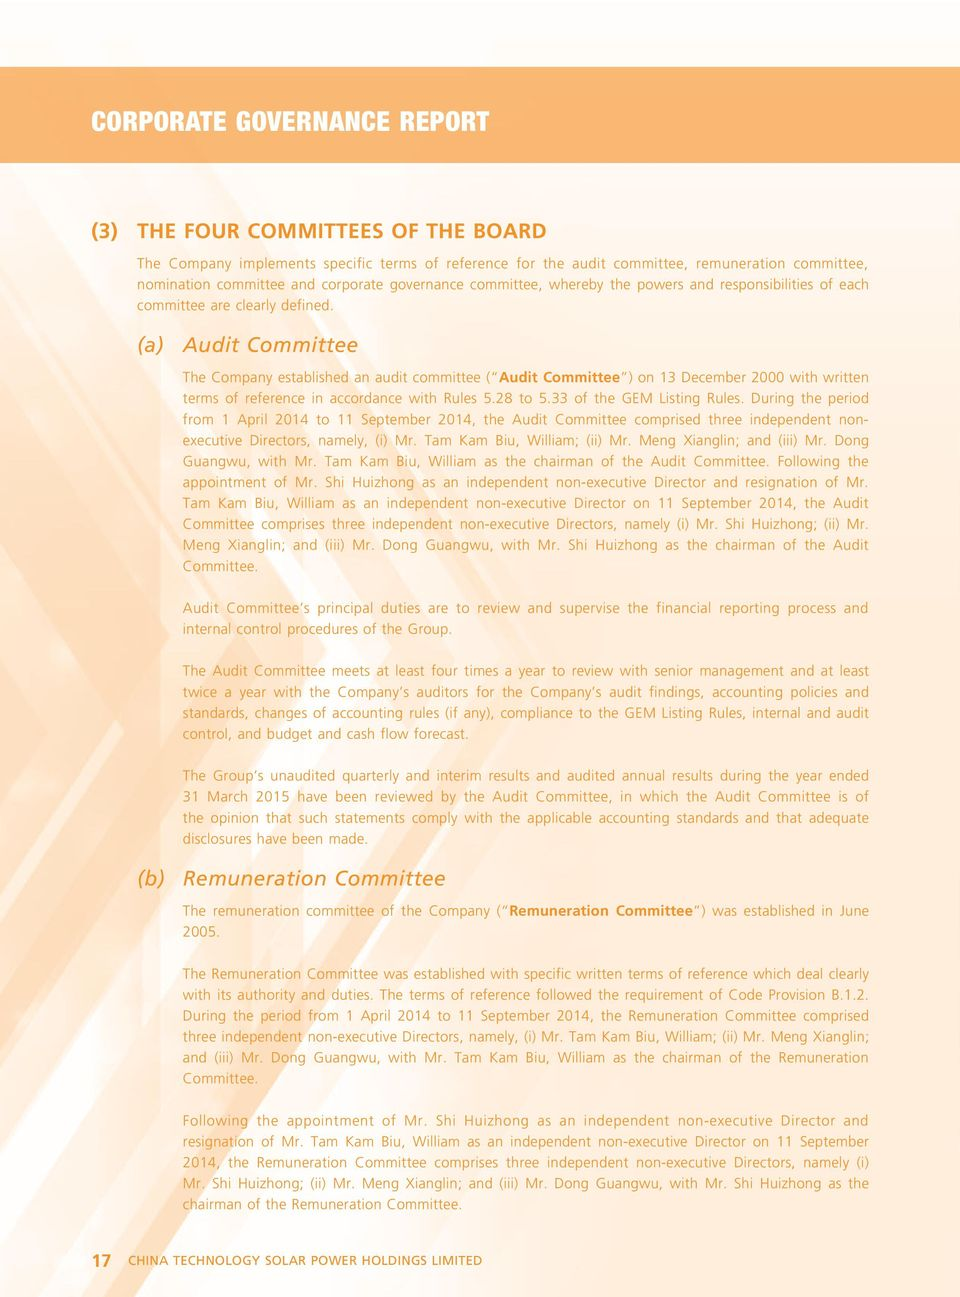 (a) Audit Committee The Company established an audit committee ( Audit Committee ) on 13 December 2000 with written terms of reference in accordance with Rules 5.28 to 5.33 of the GEM Listing Rules.